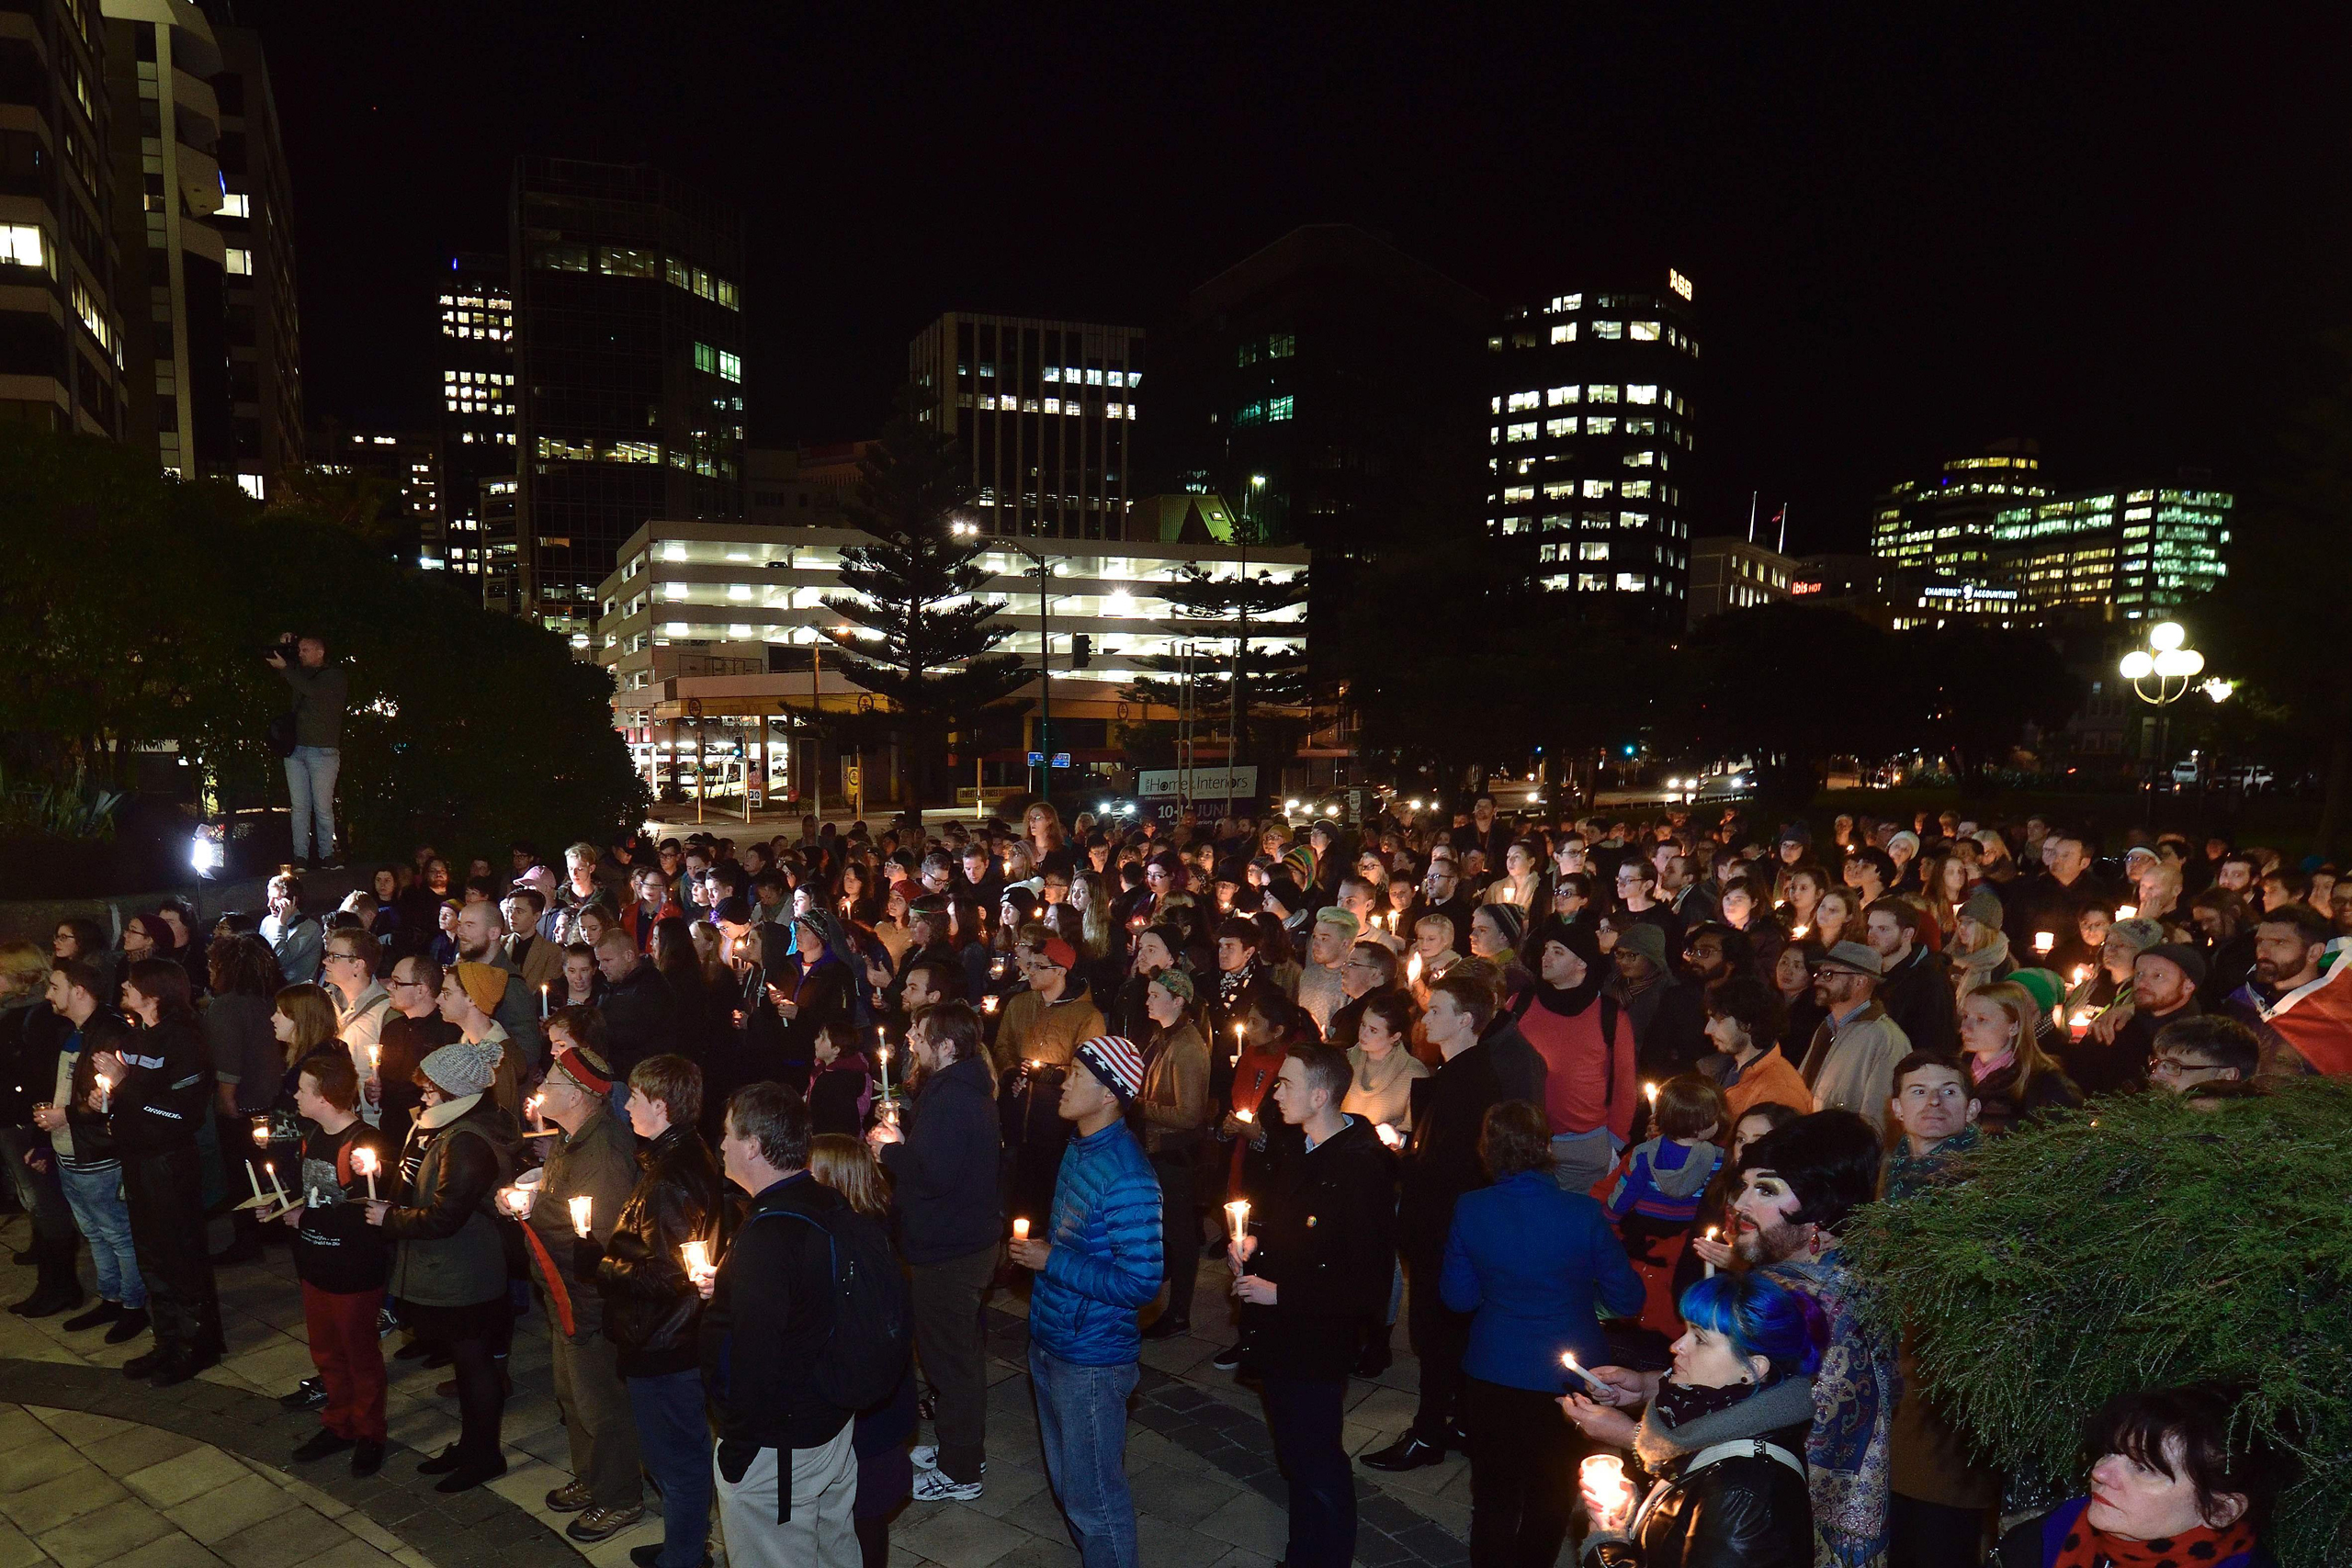 Participants hold candles during a vigil at Frank Kitts Park  in remembrance of victims after a gunman opened fire at an Orlando nightclub, in Wellington, New Zealand on June 13, 2016.